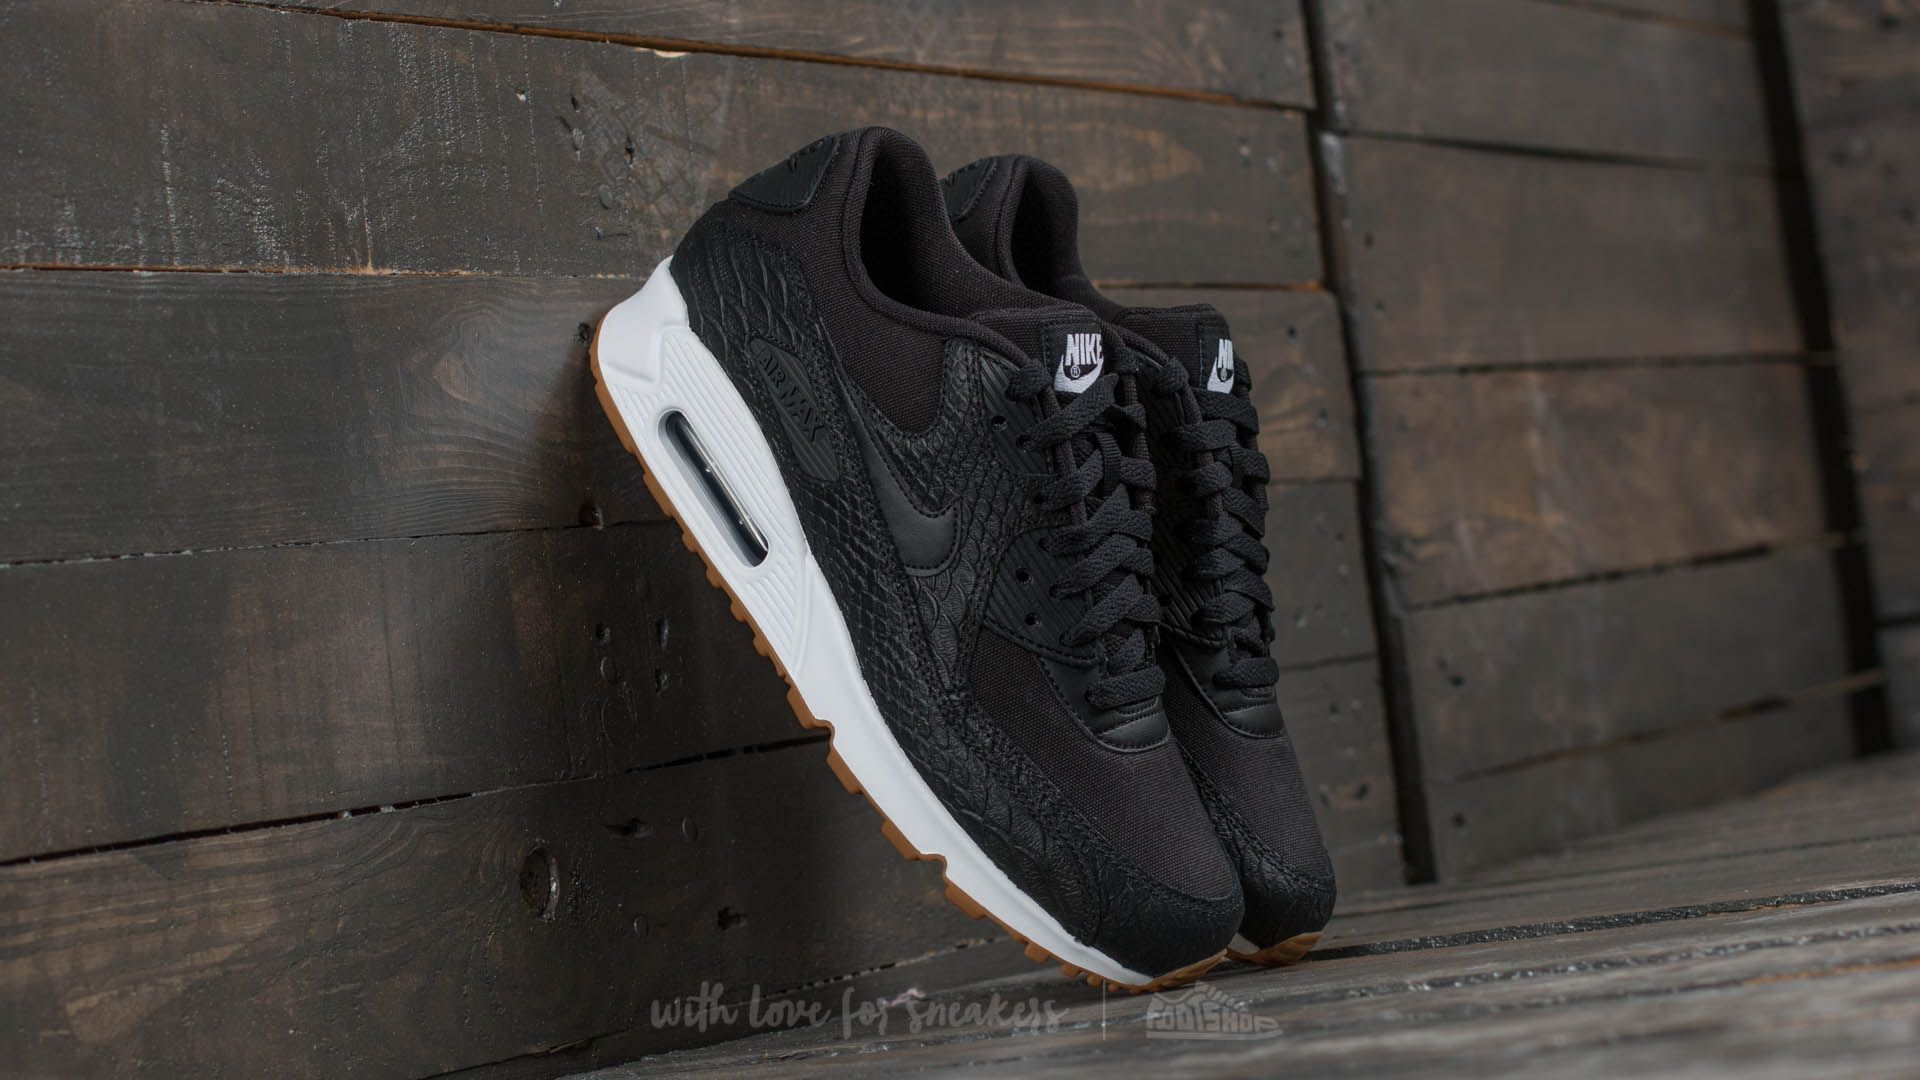 Nike AIR MAX 90 WOMENS PREMIUM BlackBlackWhite, Hype DC Exclusive